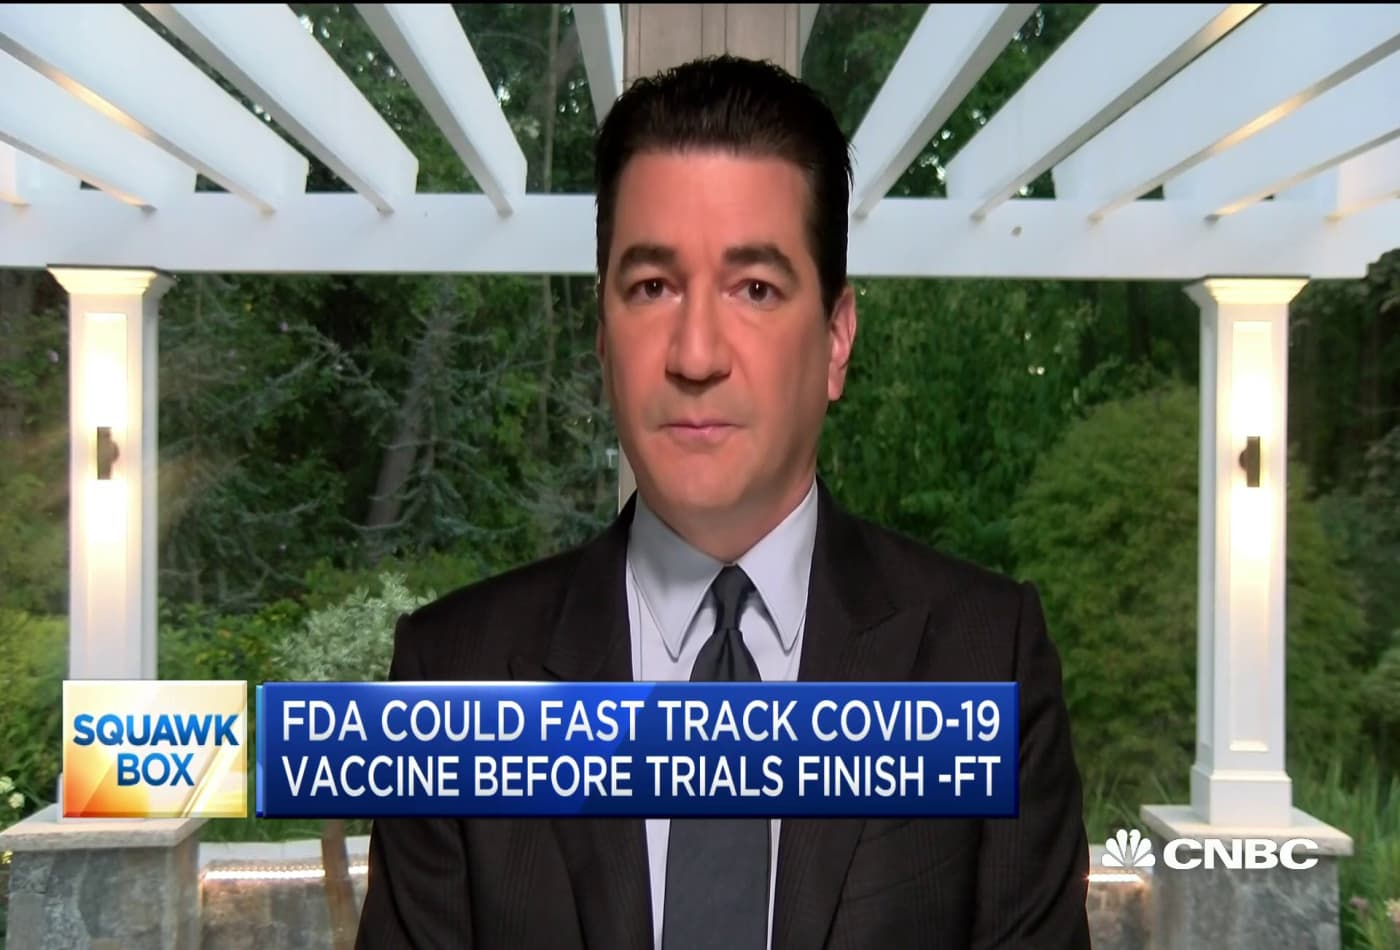 Former FDA chief Scott Gottlieb reacts to report that the FDA is willing to fast track vaccine trial